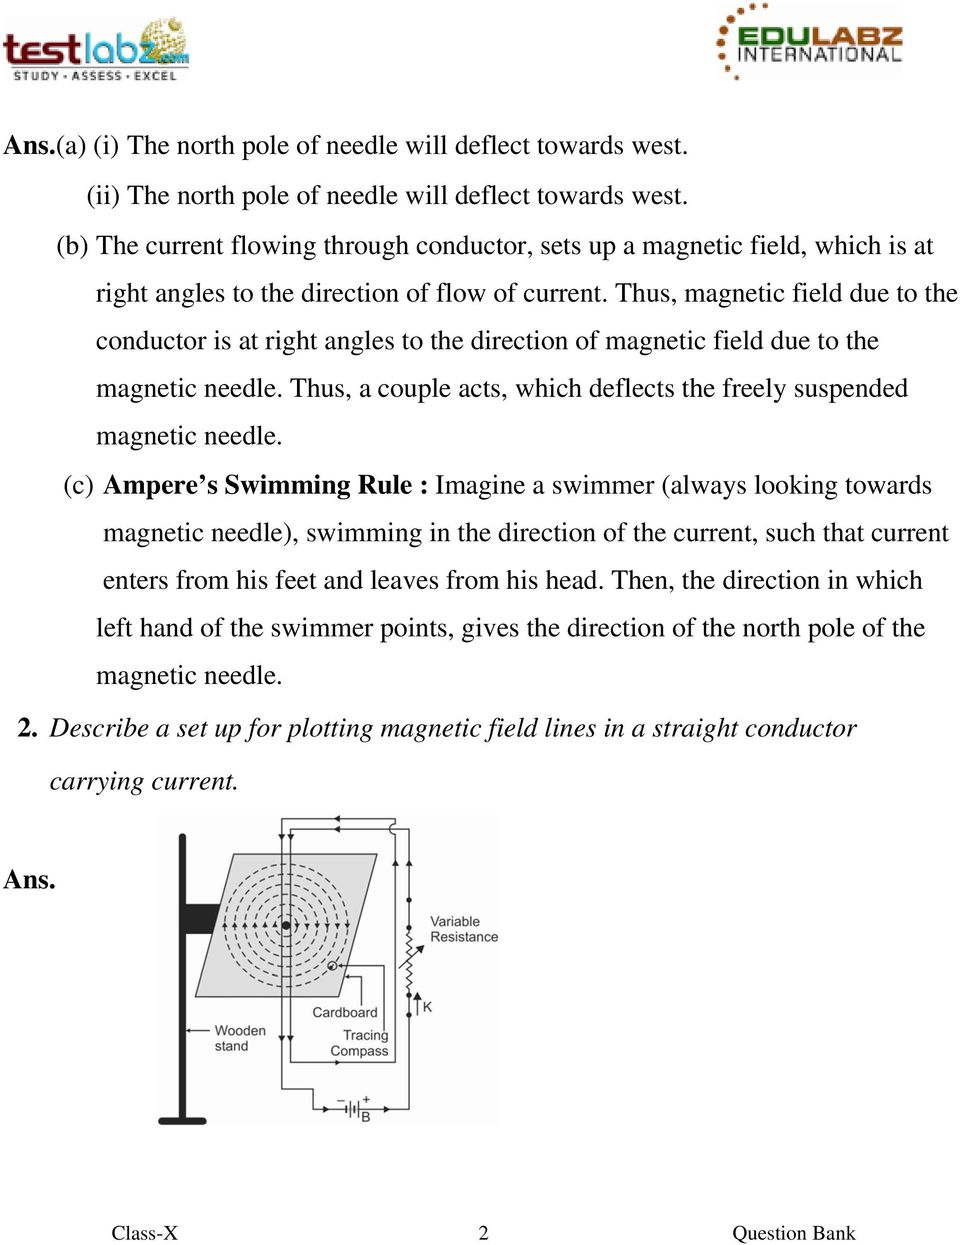 Thus, magnetic field due to the conductor is at right angles to the direction of magnetic field due to the magnetic needle. Thus, a couple acts, which deflects the freely suspended magnetic needle.